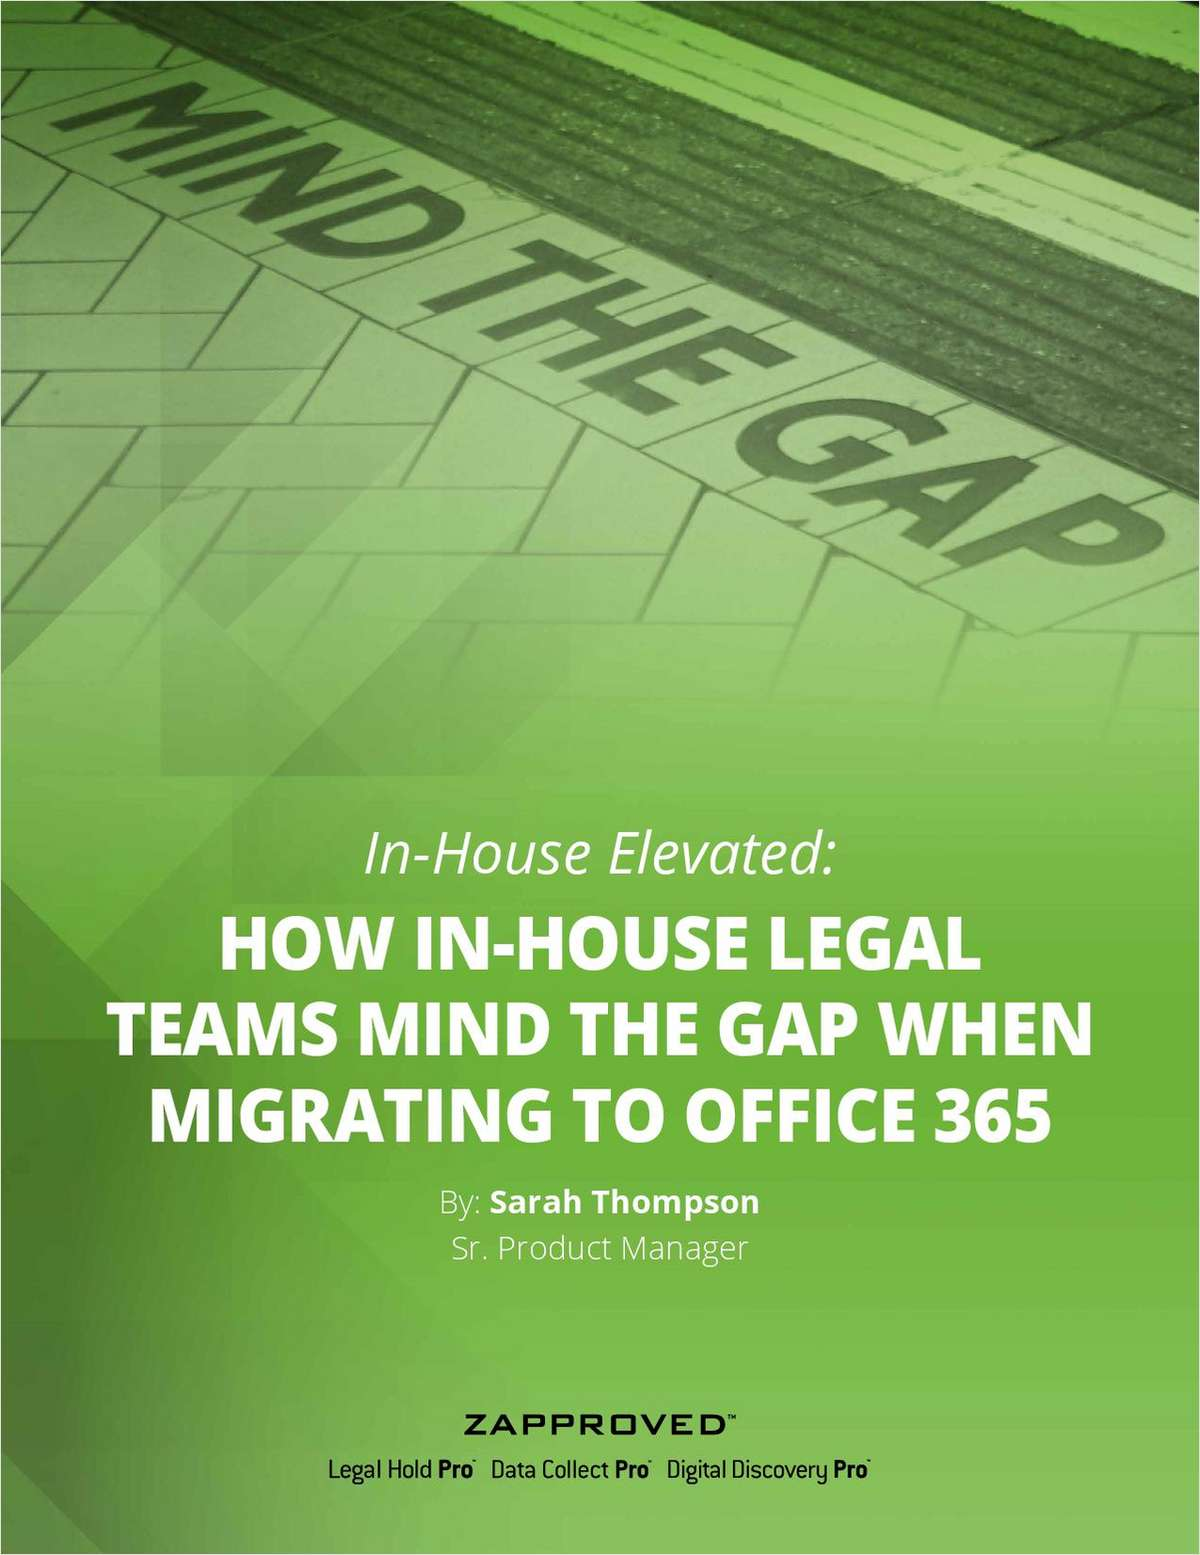 In-House Elevated: How In-House Legal Teams Mind the Gap When Migrating to Office 365